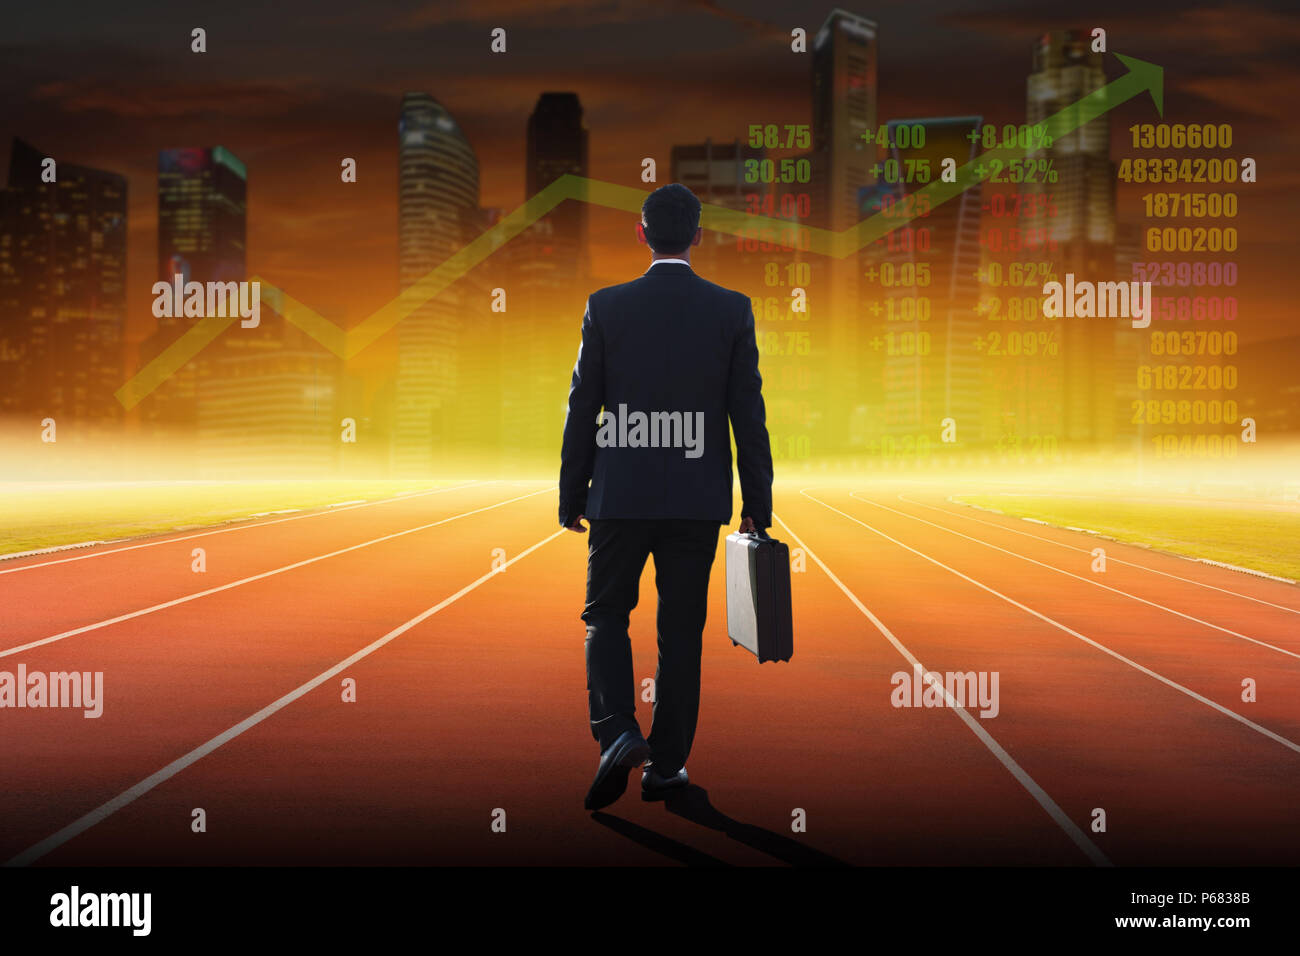 businessman walking on a track ready for race and technical stock